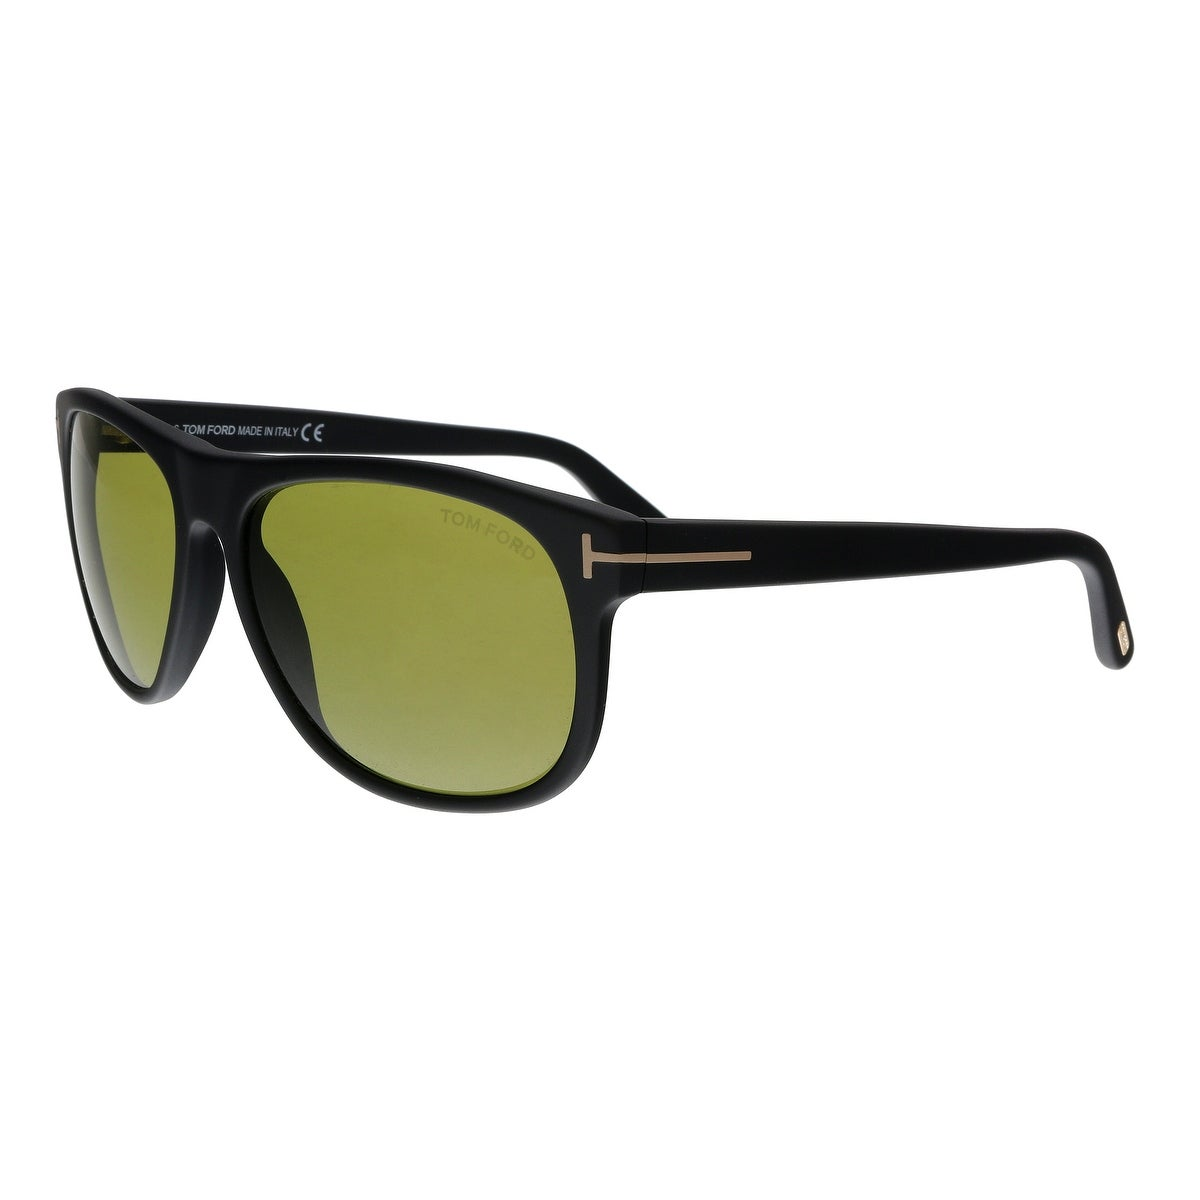 98bee700549 Tom Ford Men s Sunglasses